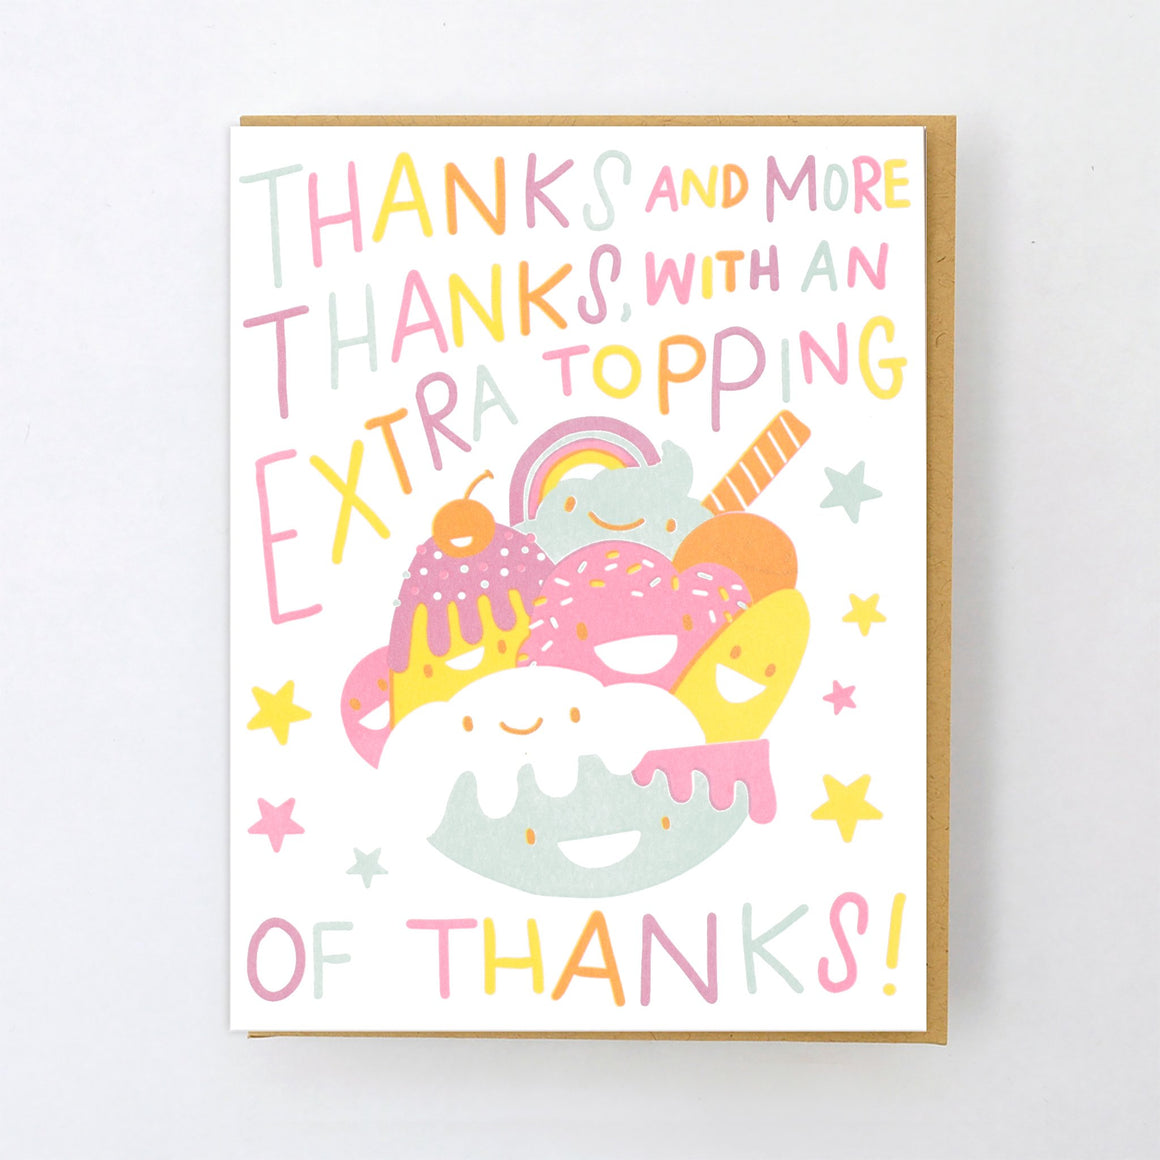 Card | Thank You | Thanks and More Thanks, With An Extra Toppings of Thanks